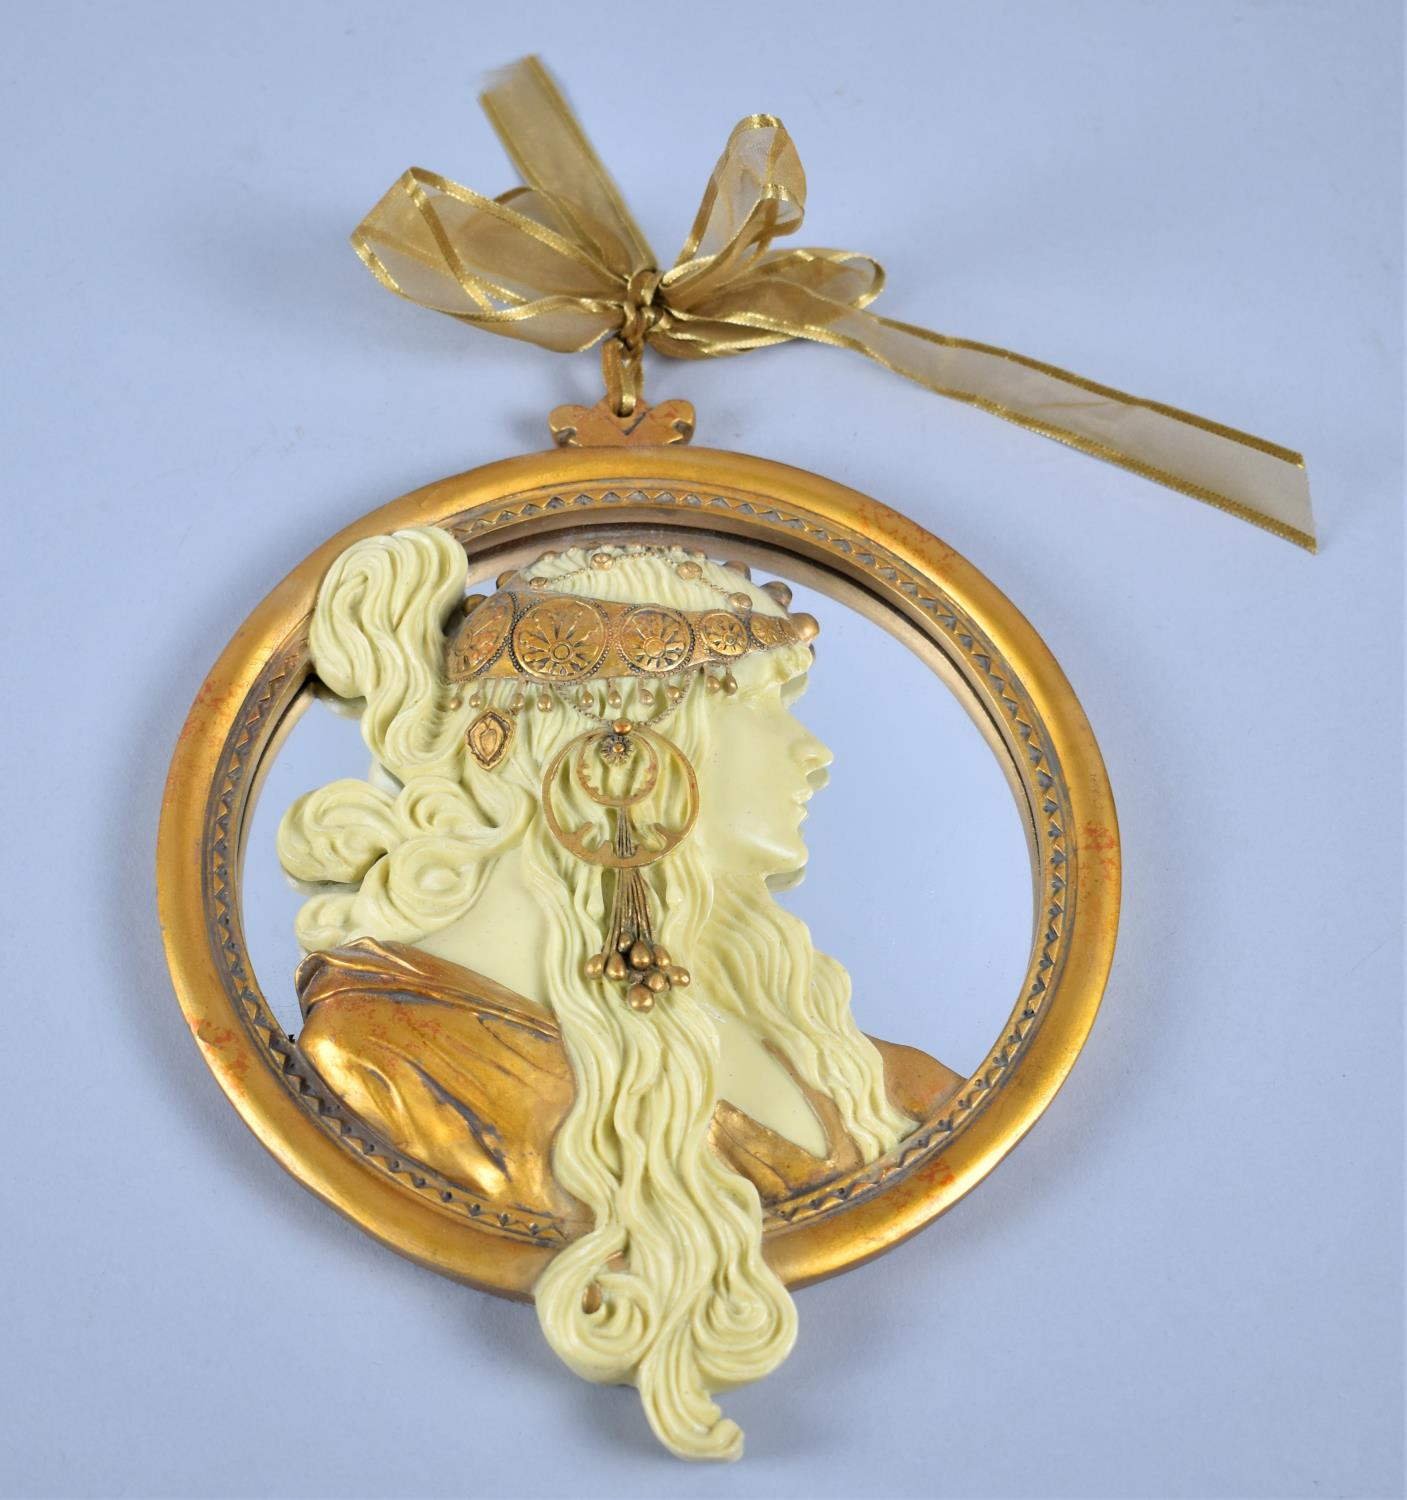 A Modern Resin Framed Circular Wall Mirror, Decorated with Medieval Maiden, 20cm Diameter